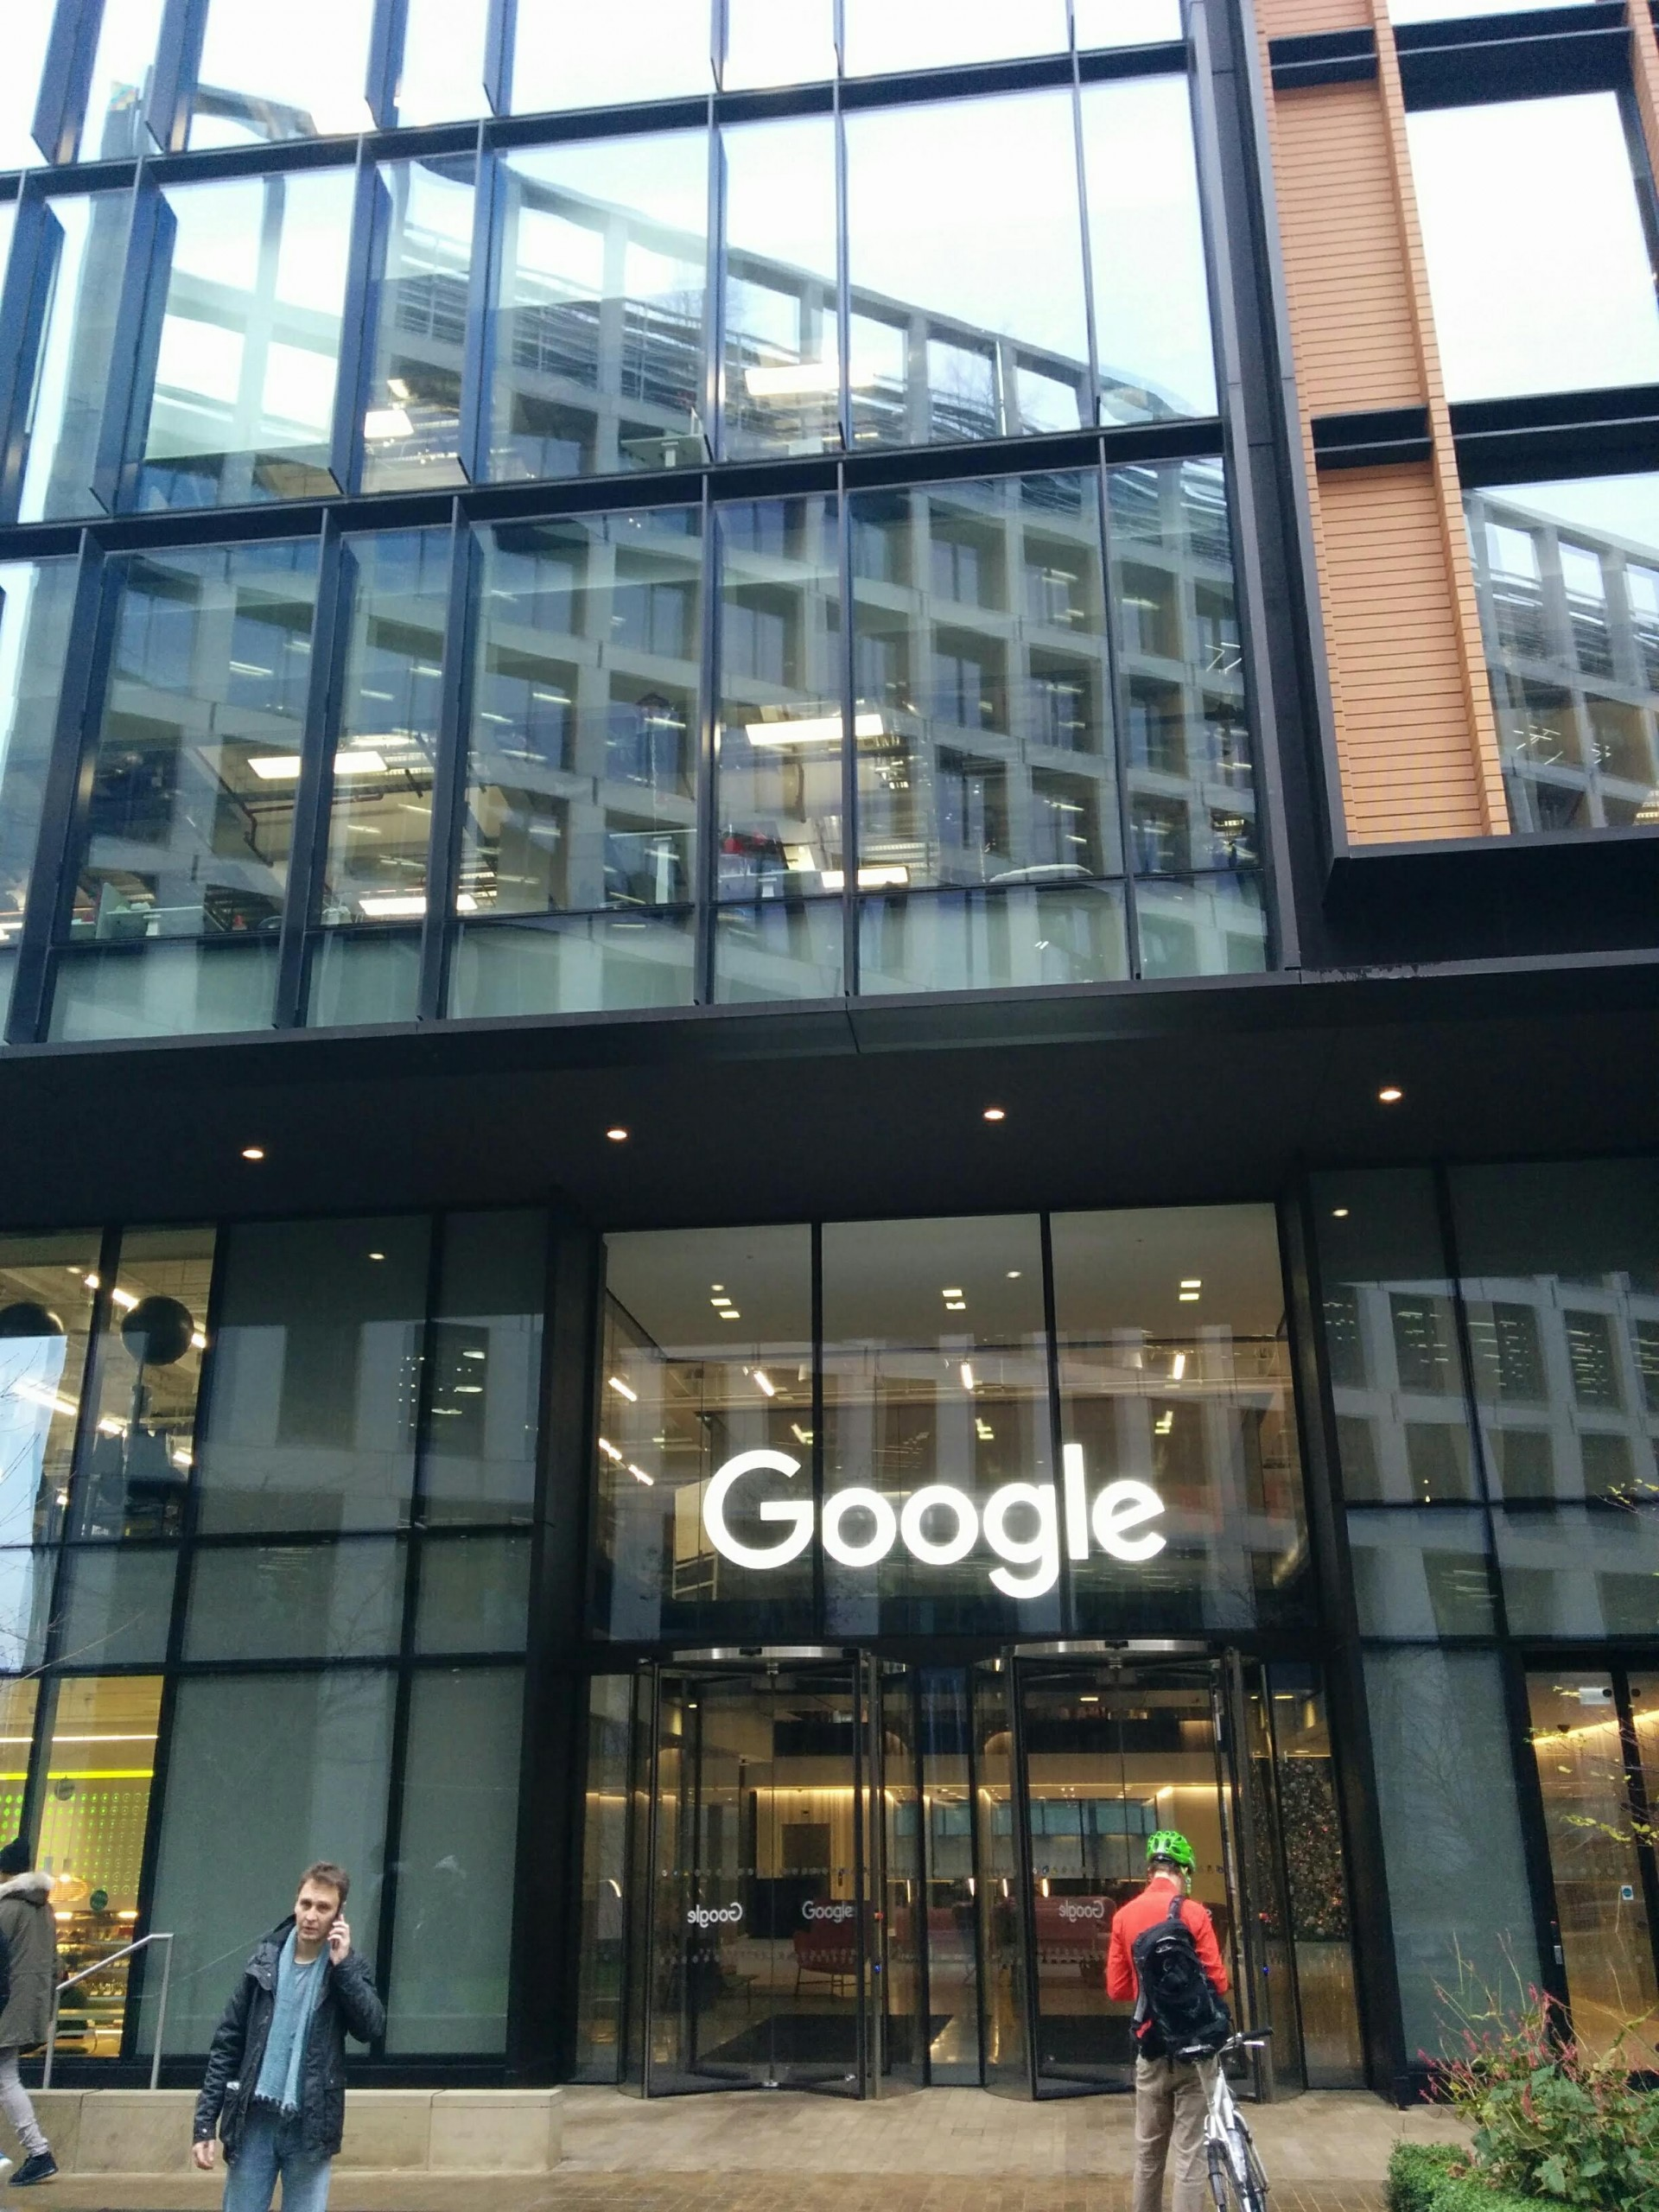 015 Google Deep Mind Headquarters In London2c 6 Pancras Square Deepmind Researchs Outstanding Research Papers 1920